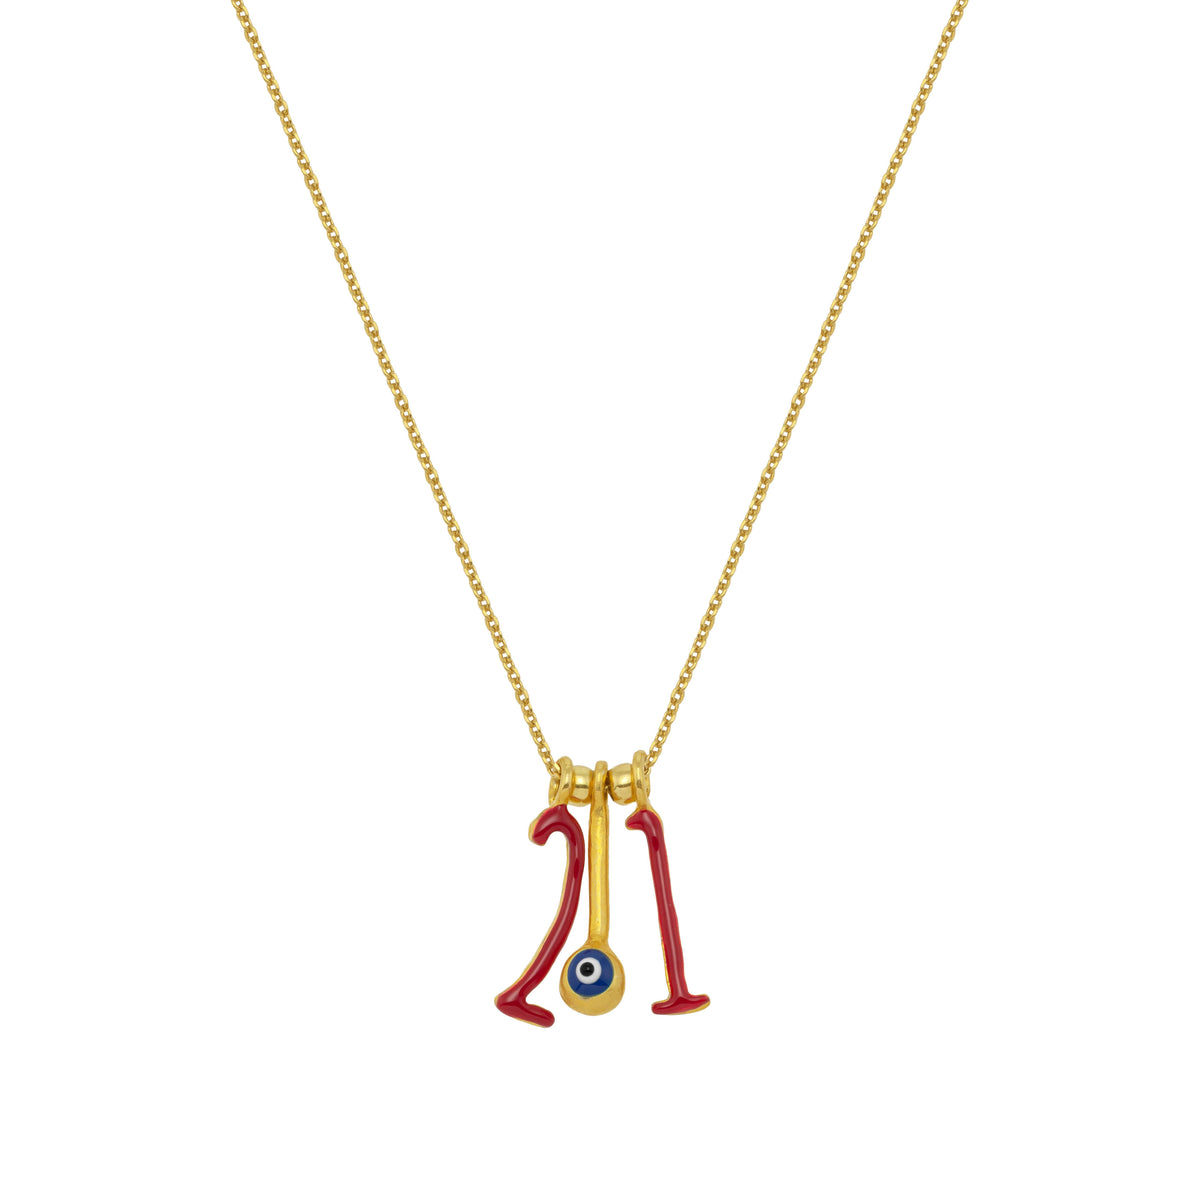 CHARMS: 2021 | Red Enamel | 18K Gold Plated Silver